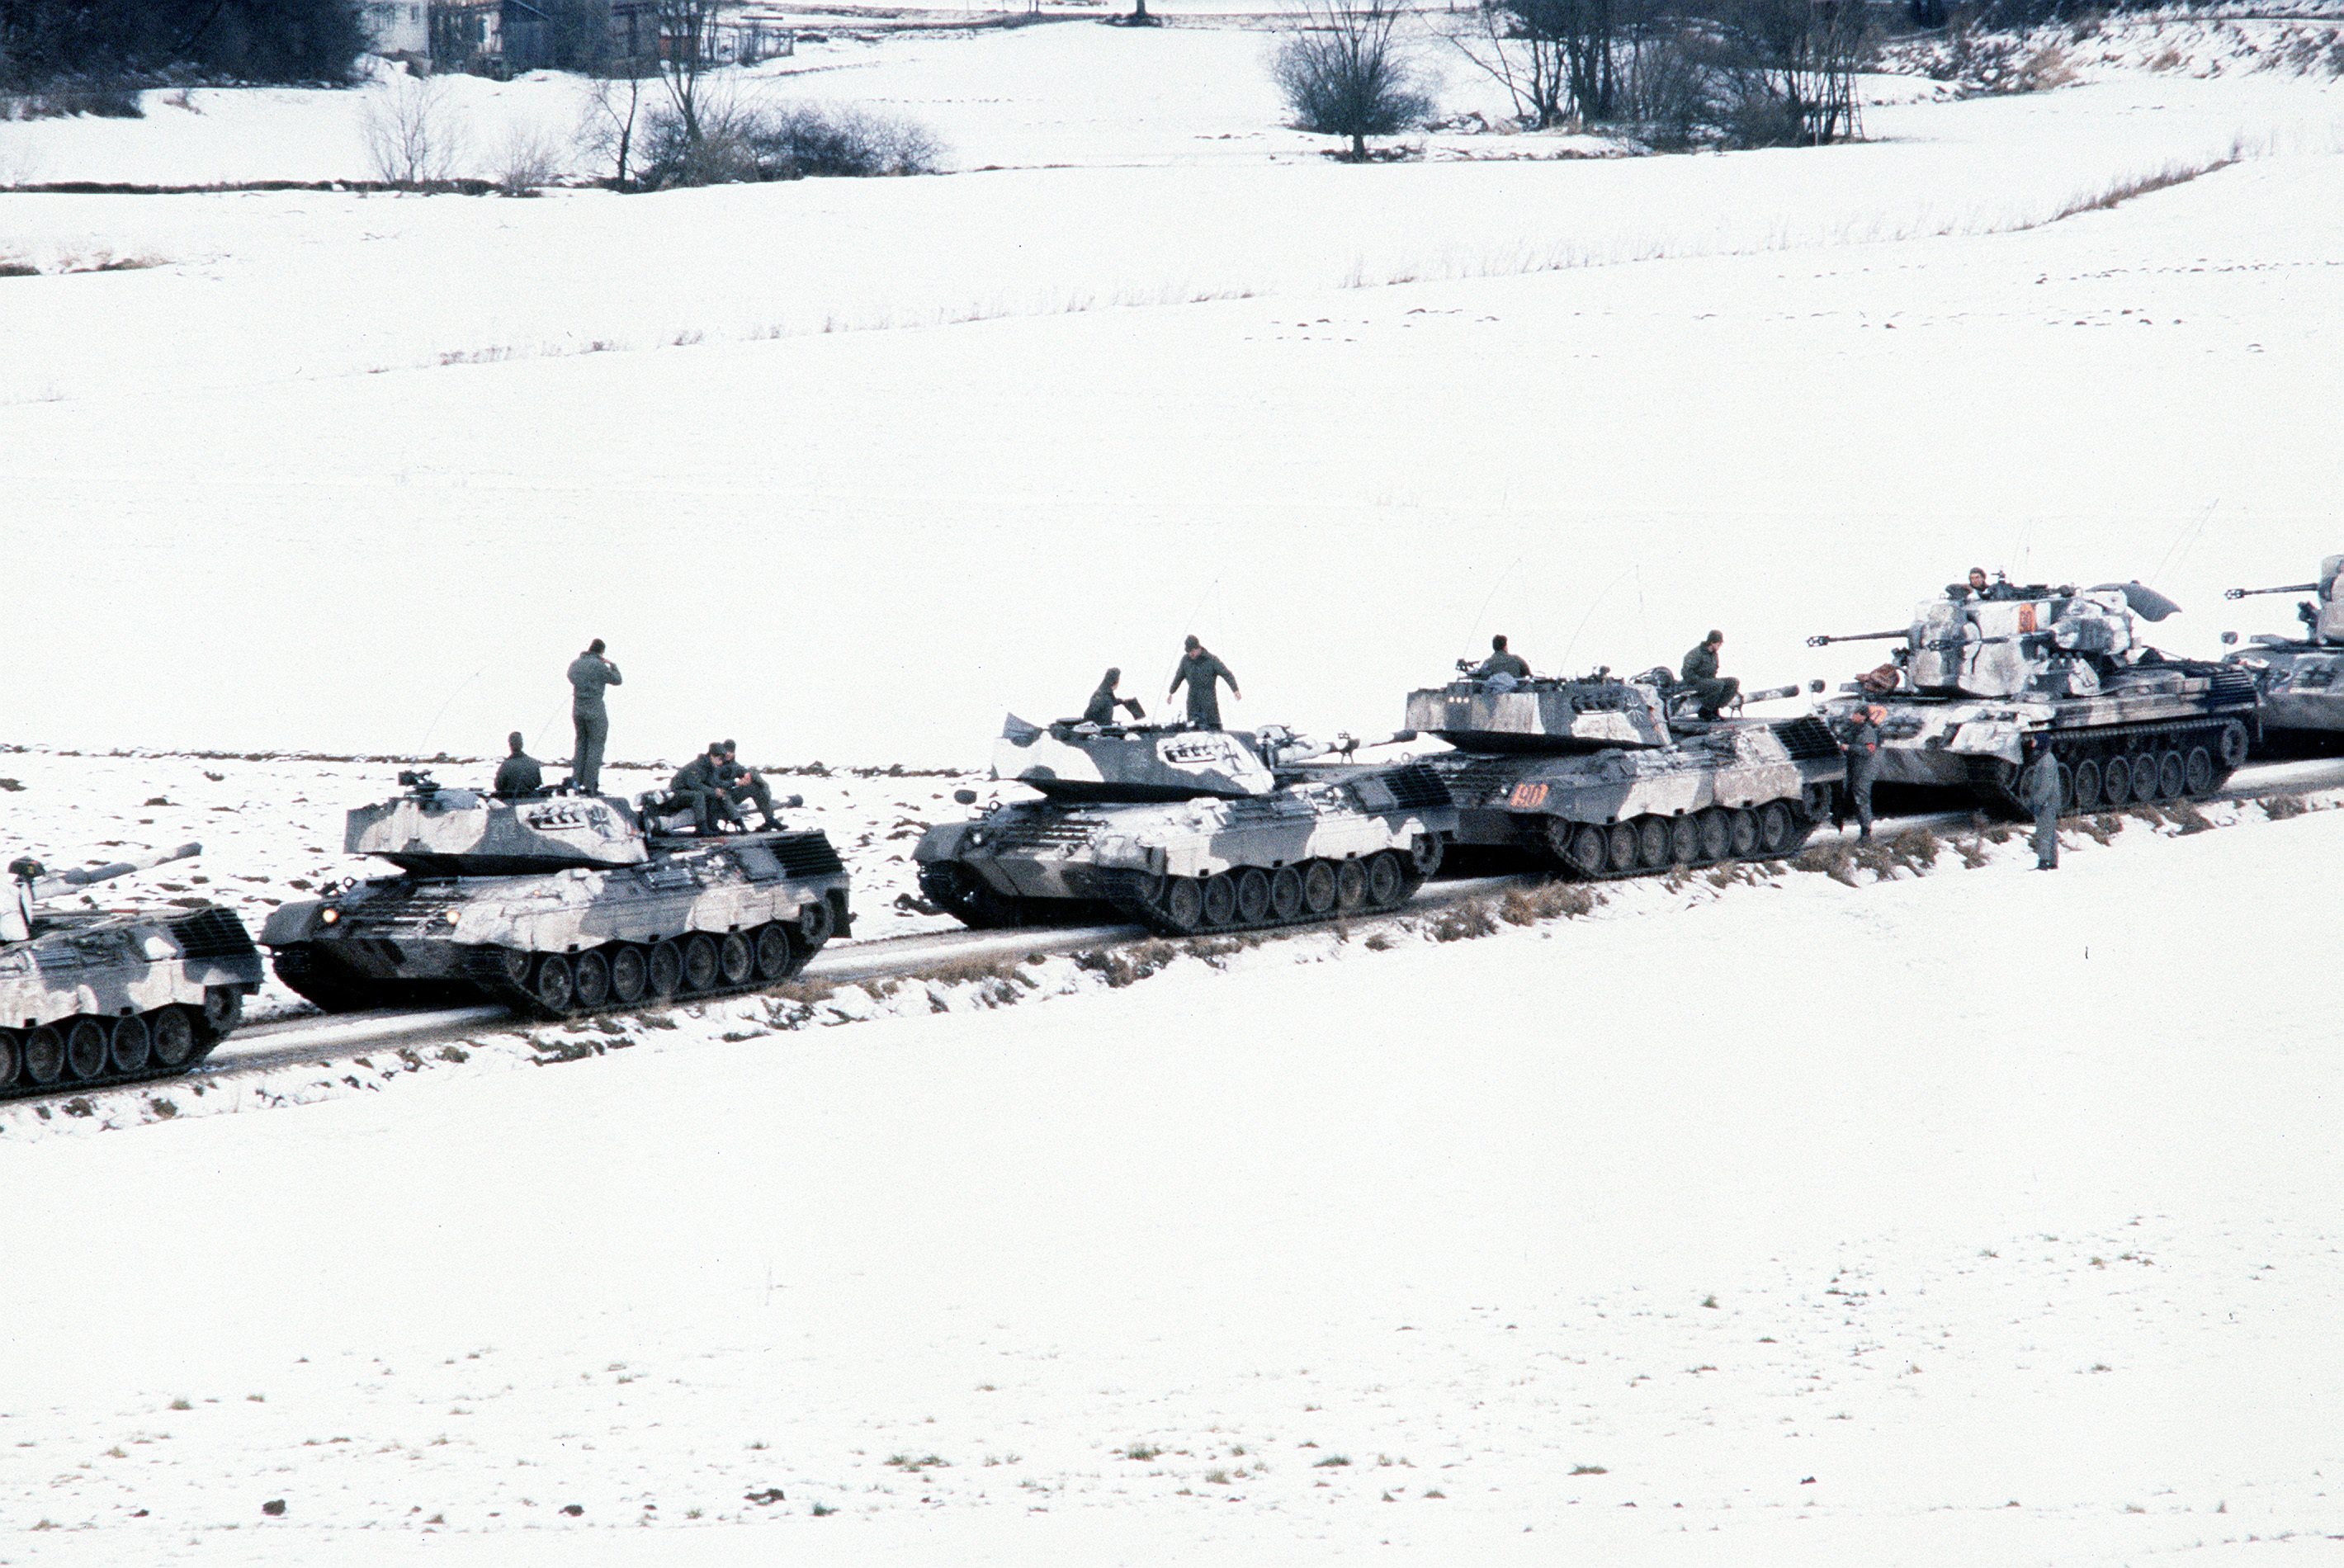 West German leopard tanks